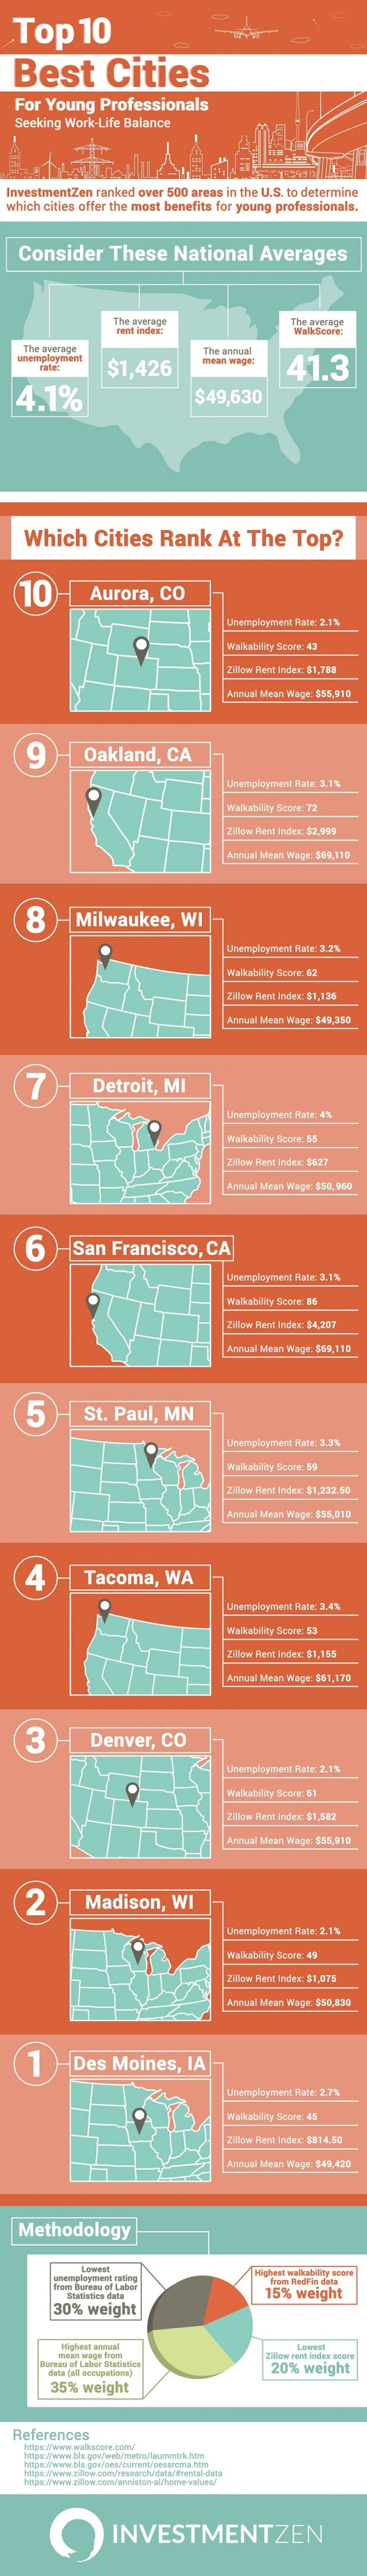 Top 10 Cities for Young Professionals